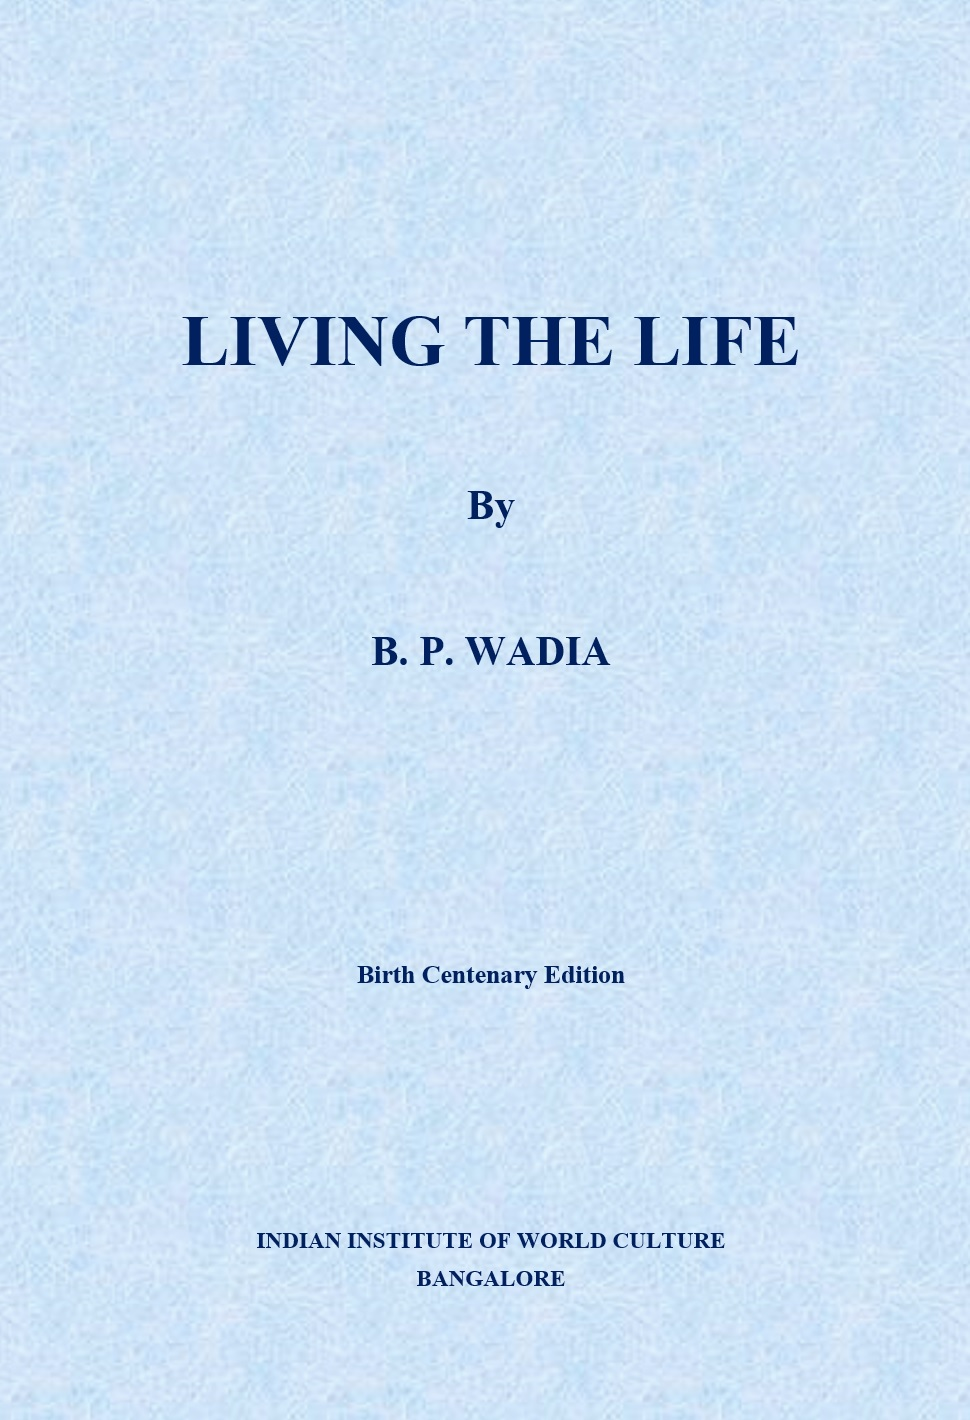 Living the Life by B.P.Wadia